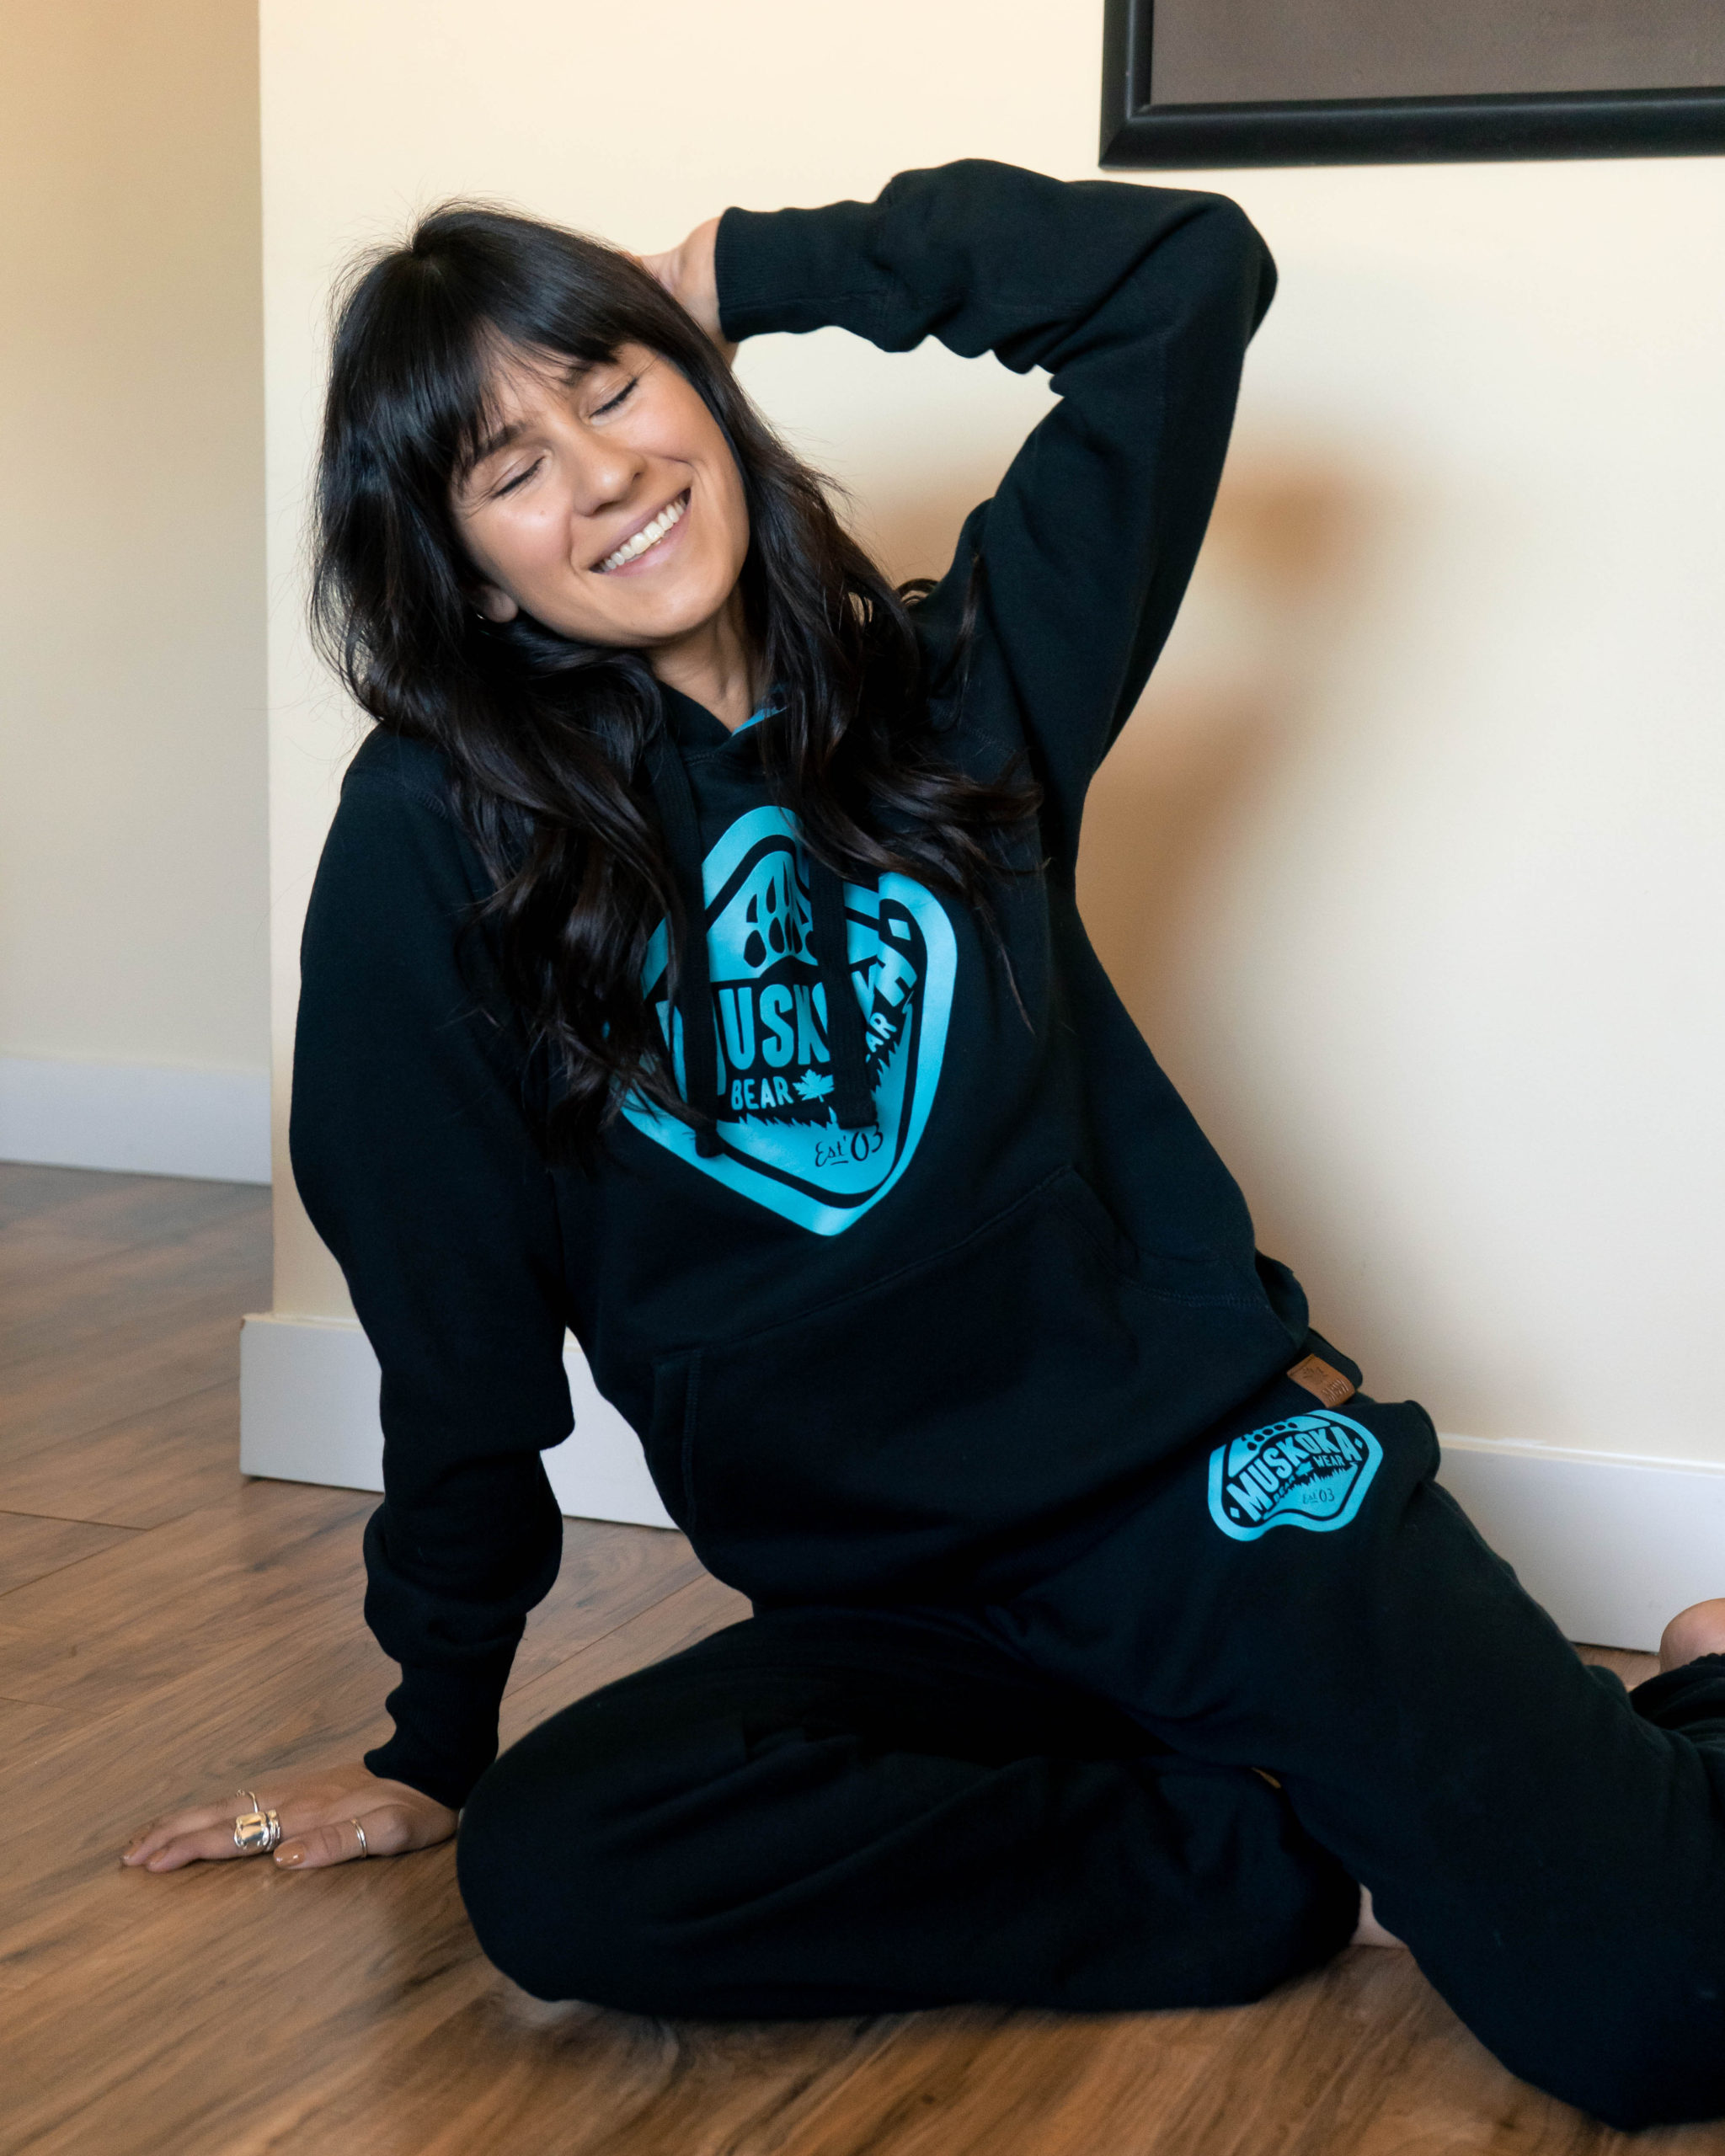 Content Creator Mal.Bee wearing the Black with Aqua Ladies Cabin Hoody and Original Paw Pants